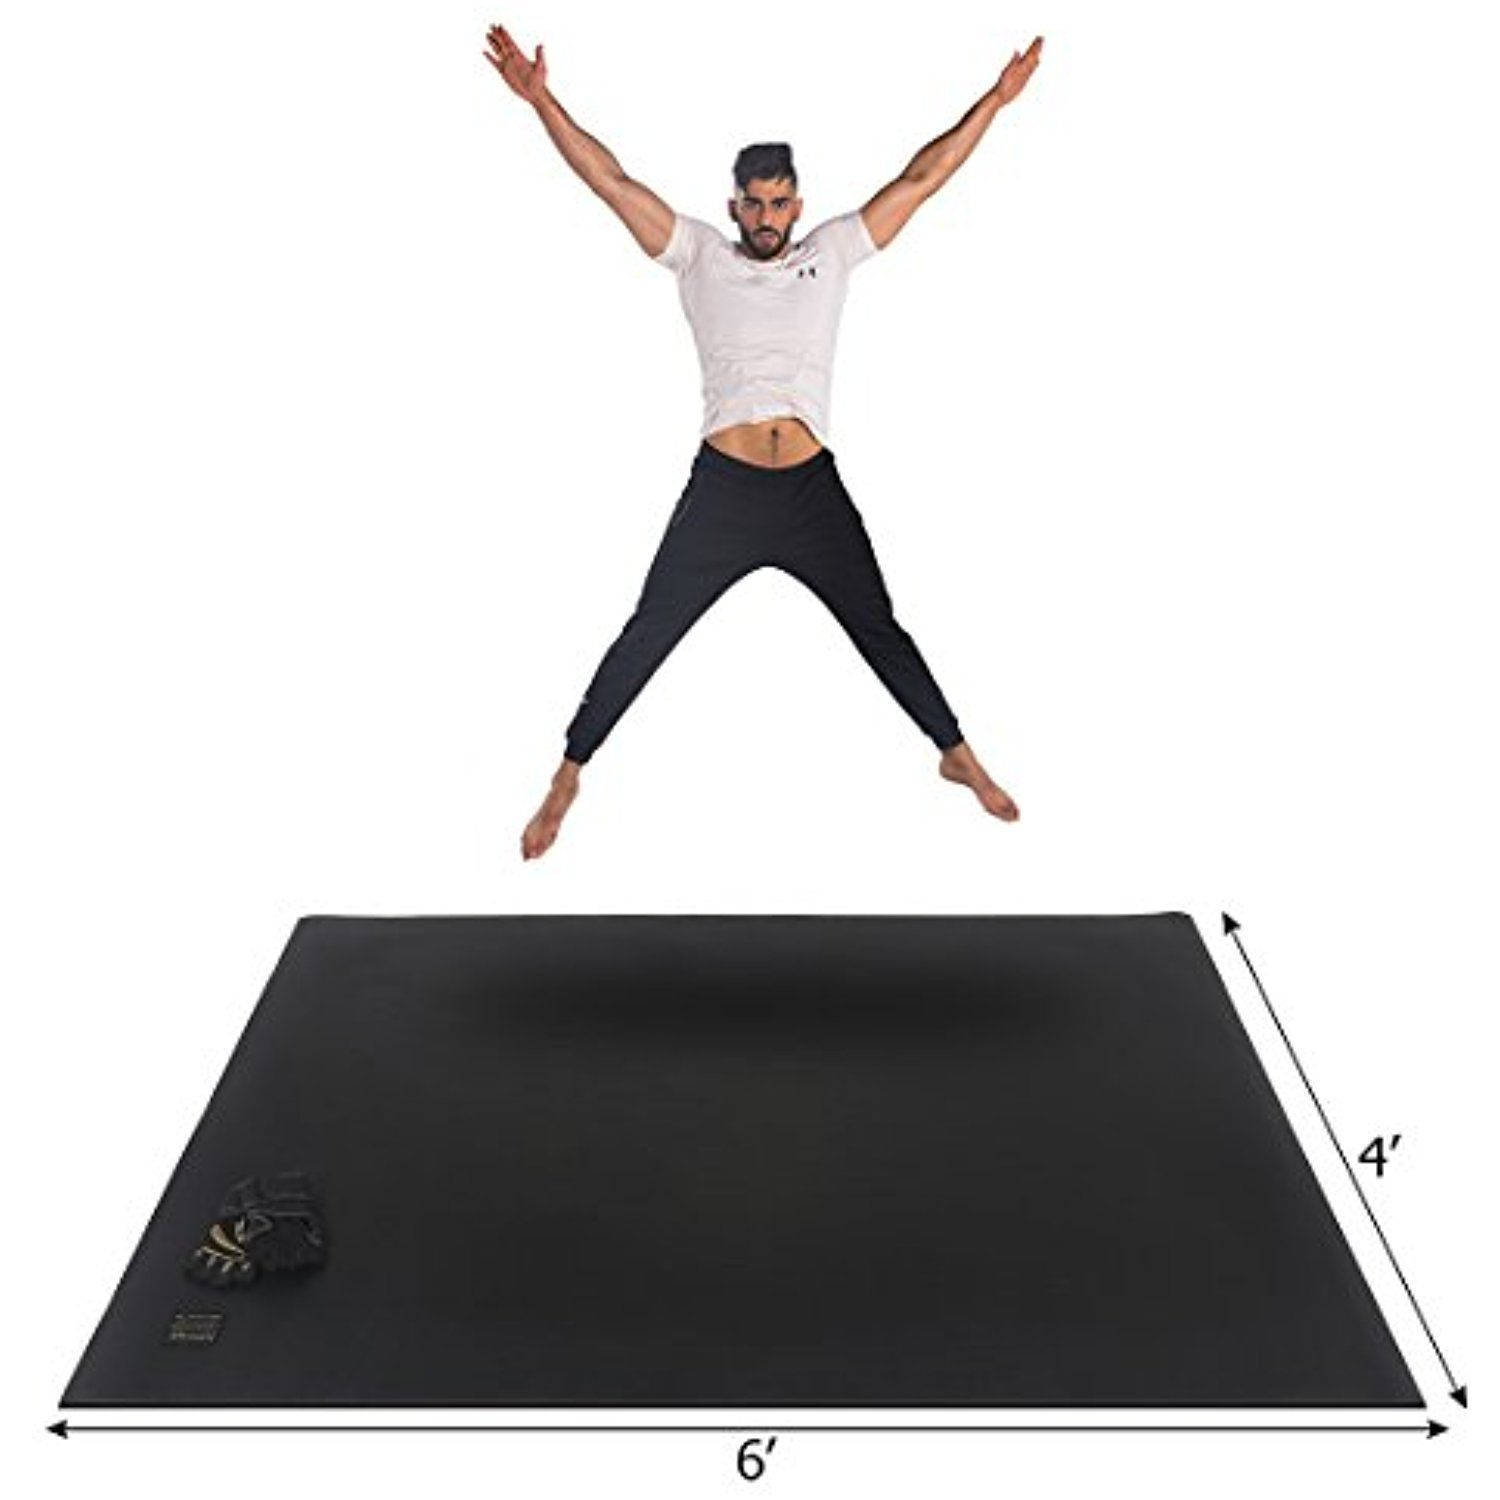 Gxmmat Large Exercise Mat 6 X 4 X 7mm Ultra Durable Non Slip Thick Equipment Mats For Home Gym Flooring Pl Large Workout Mat Gym Flooring No Equipment Workout